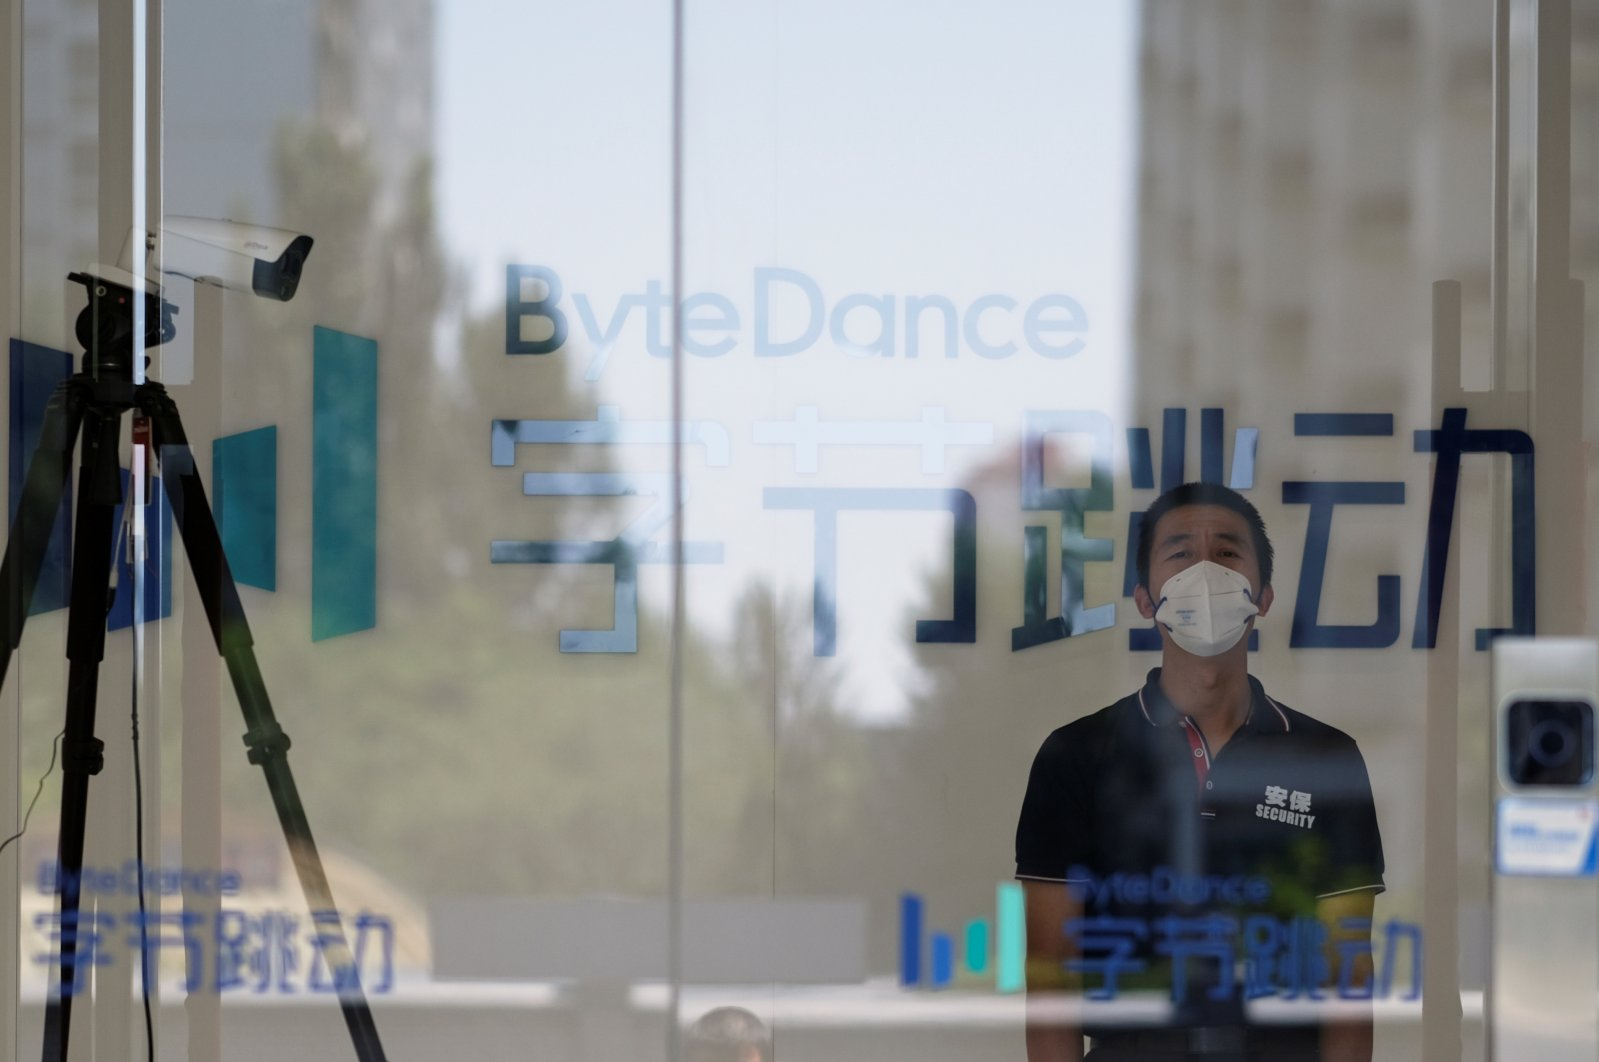 A security guard, wearing a face mask to protect against the coronavirus, stands near a surveillance camera at an office of Bytedance, the China-based company which owns the short video app TikTok, in Beijing, China, July 7, 2020. (Reuters Photo)